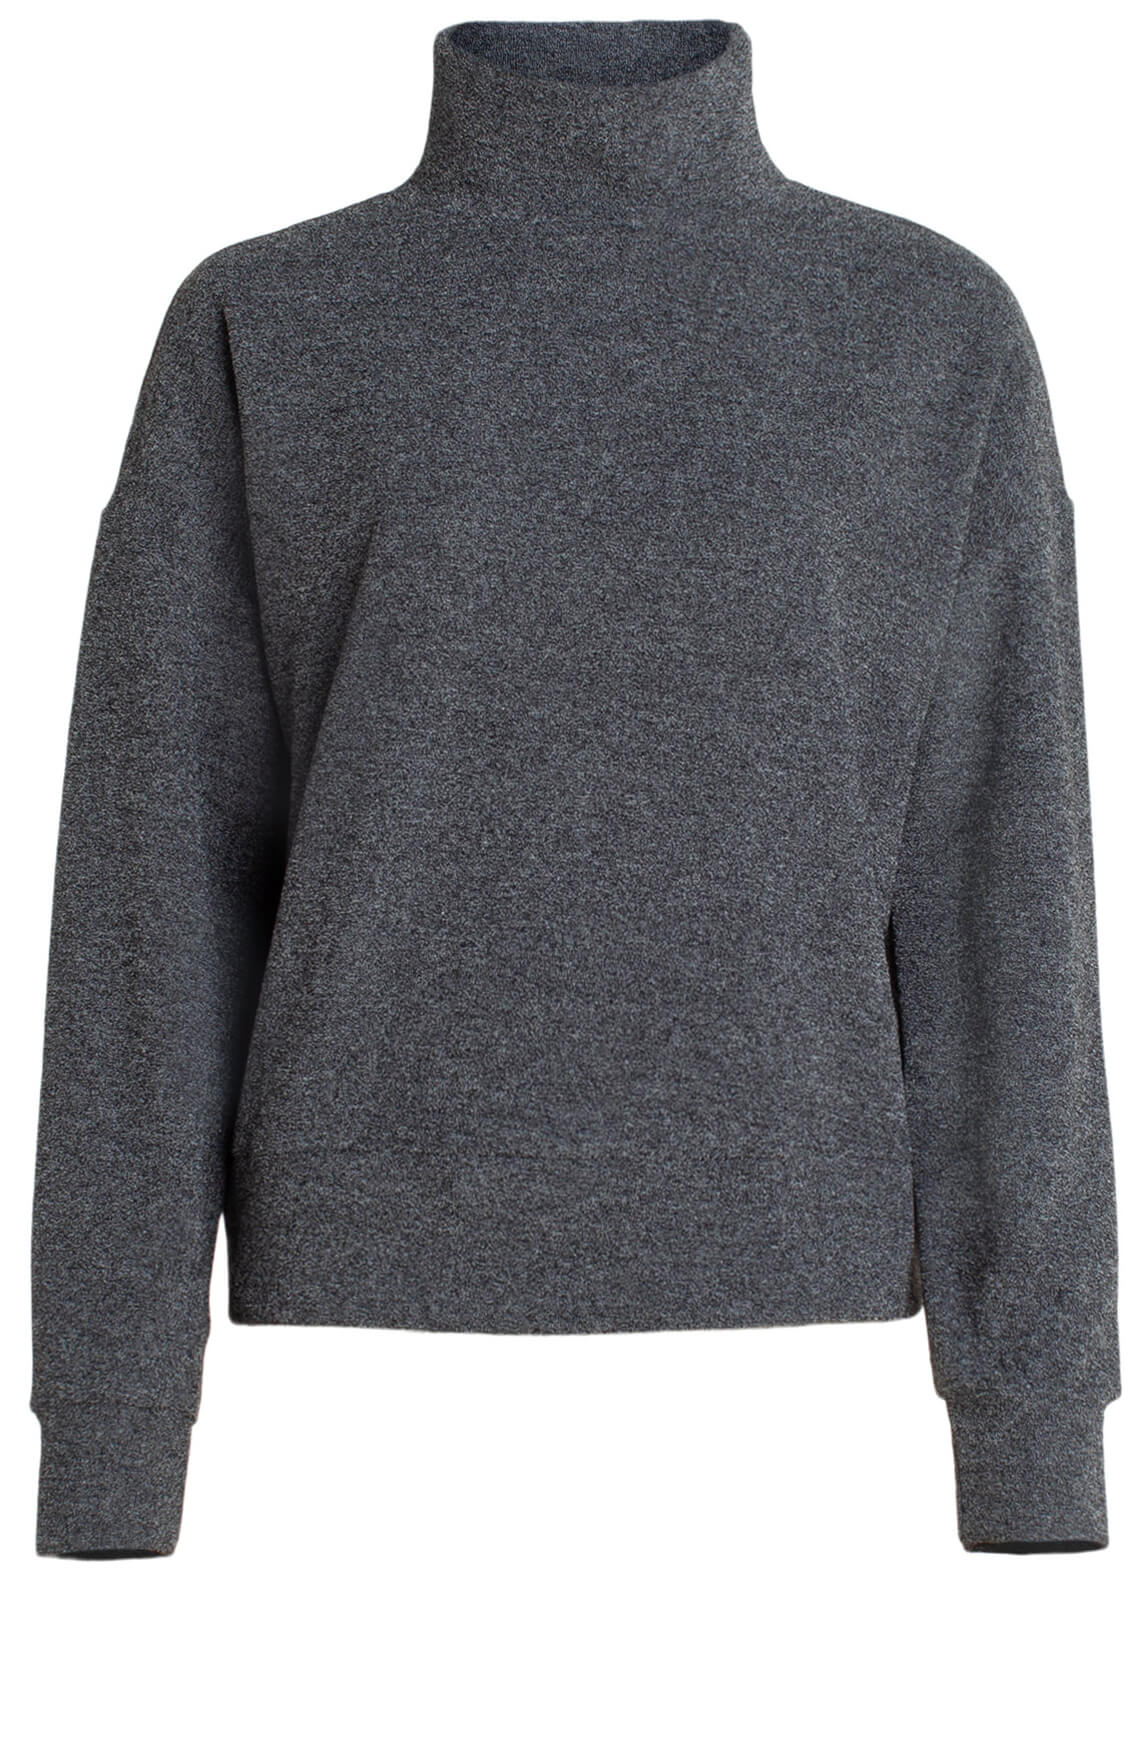 Penn & Ink Dames Sweater met col zwart